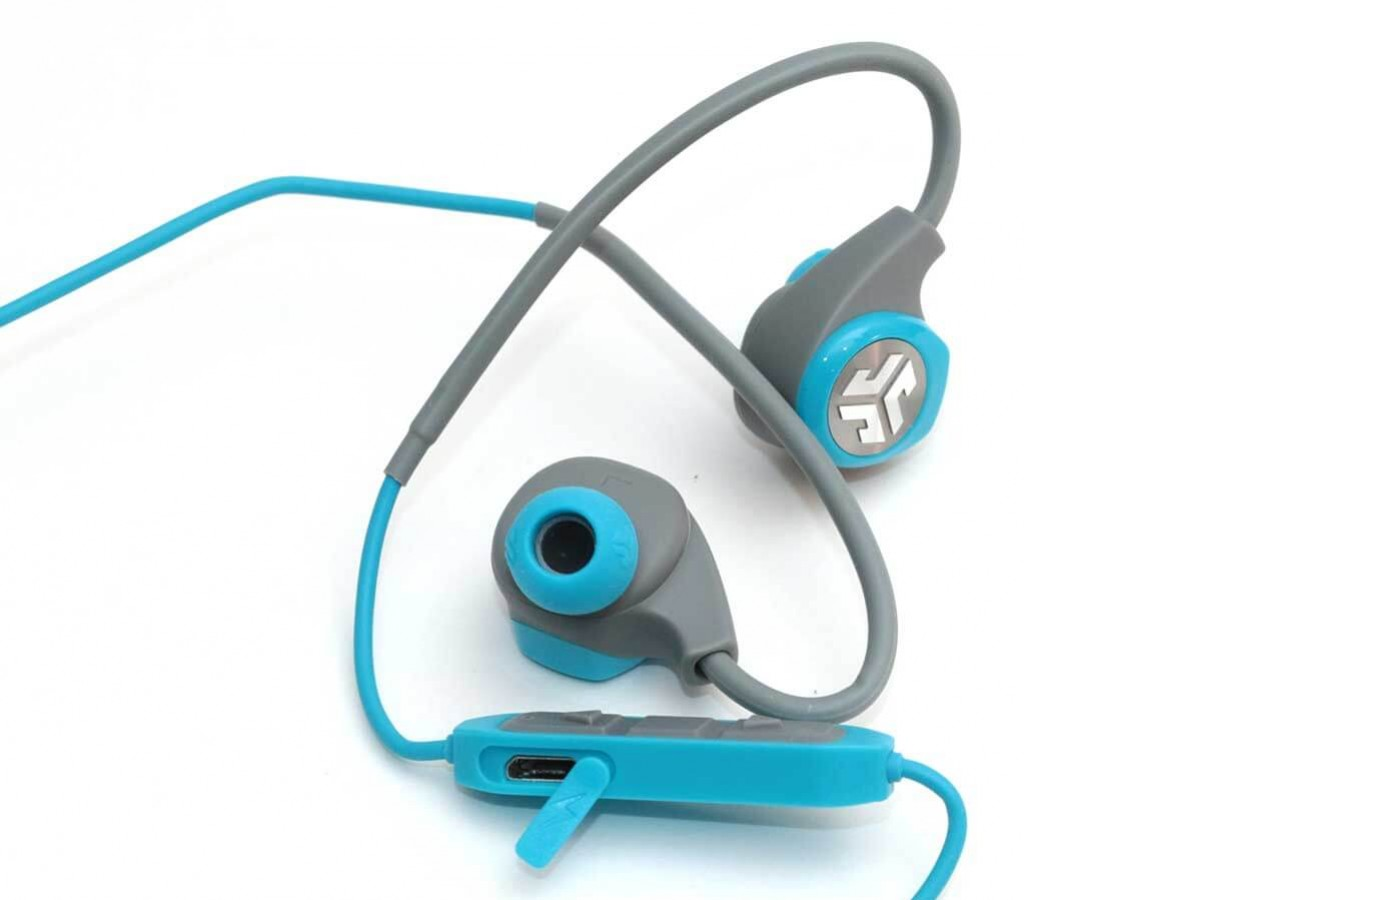 J Lab Epic 2 earbuds